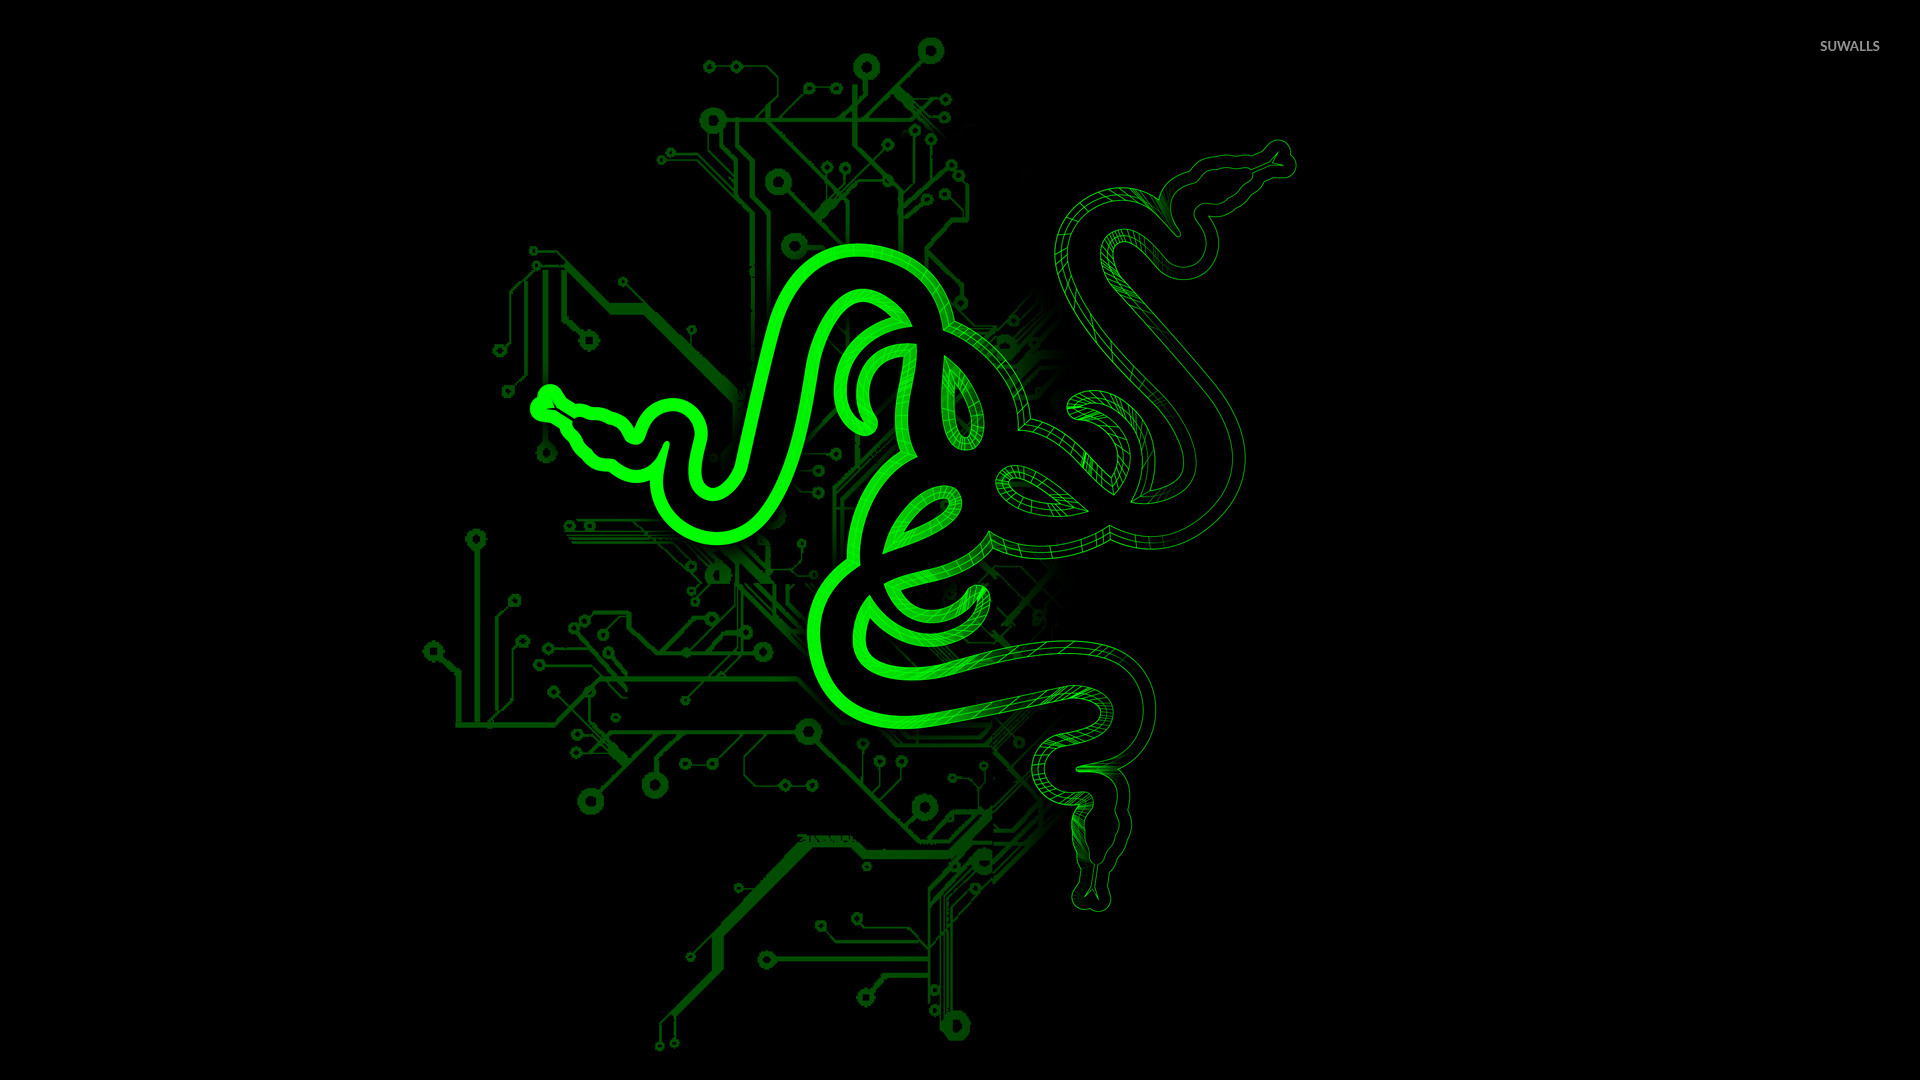 Razer Ipo To Start Public Trading Monday 291 Times Oversubscribed